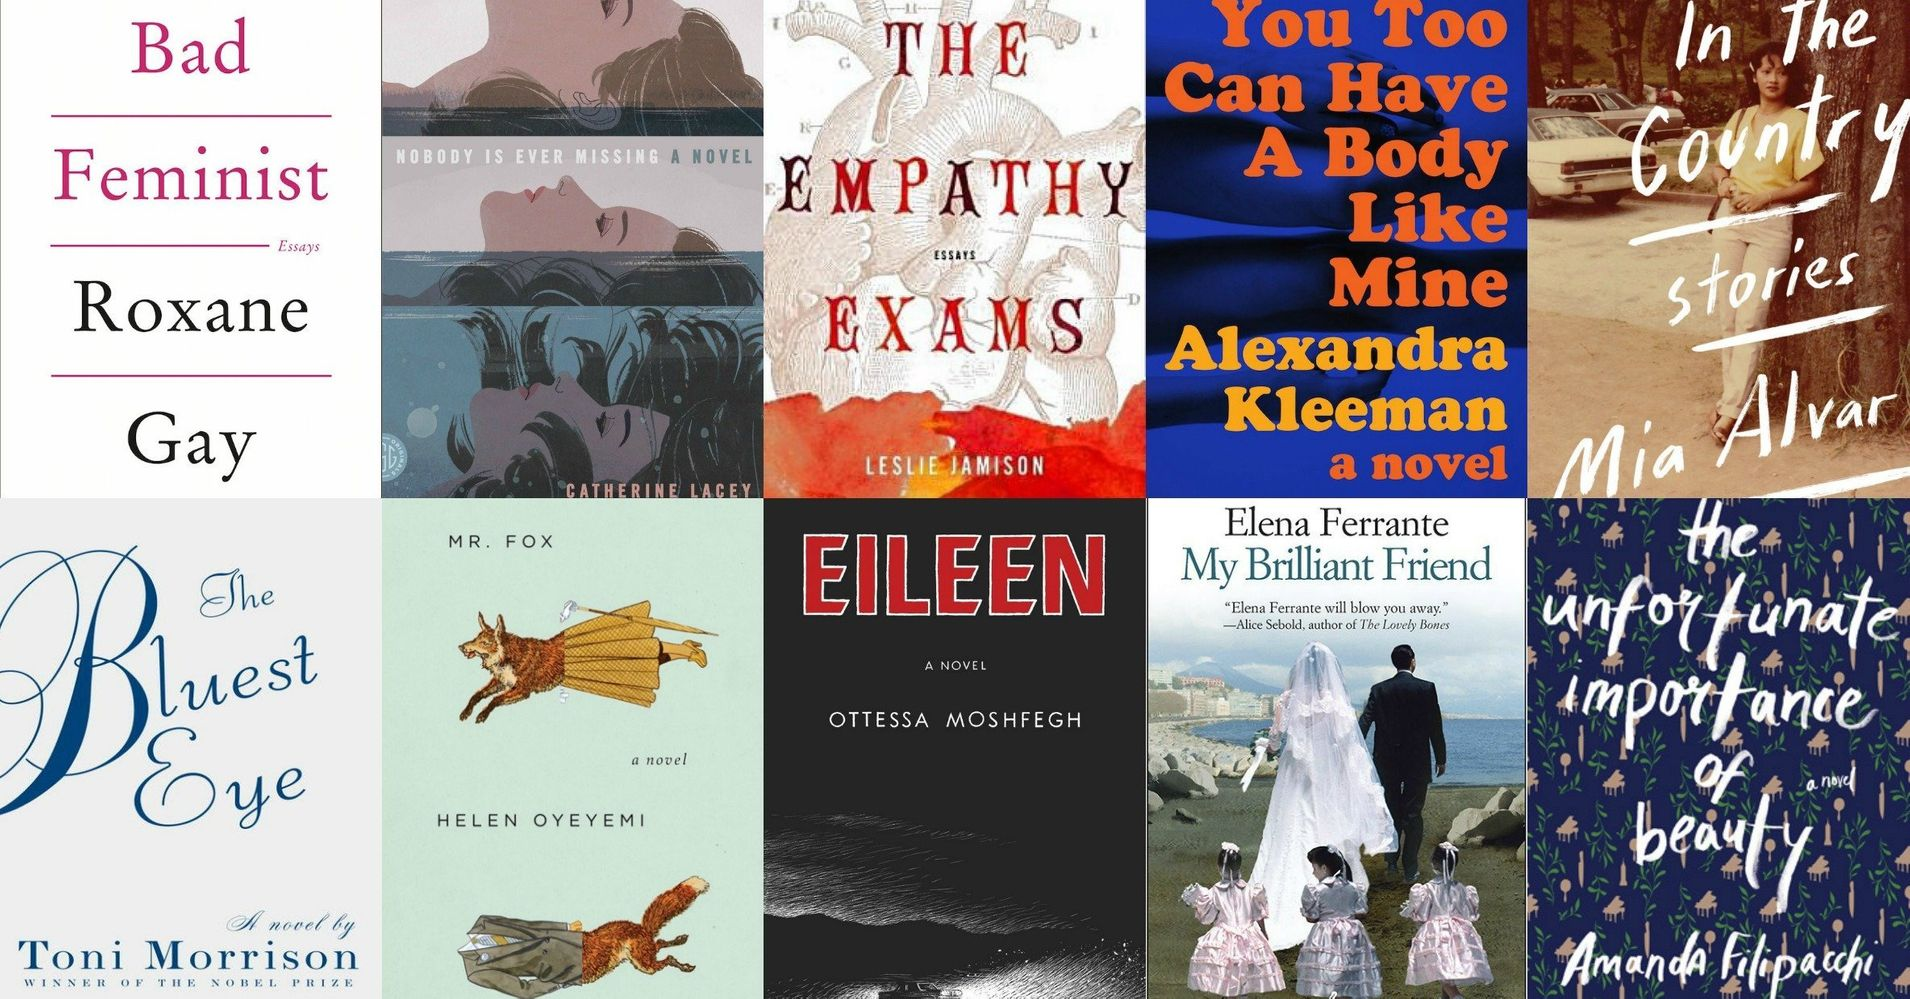 provocative books by women every bookshelf needs huffpost